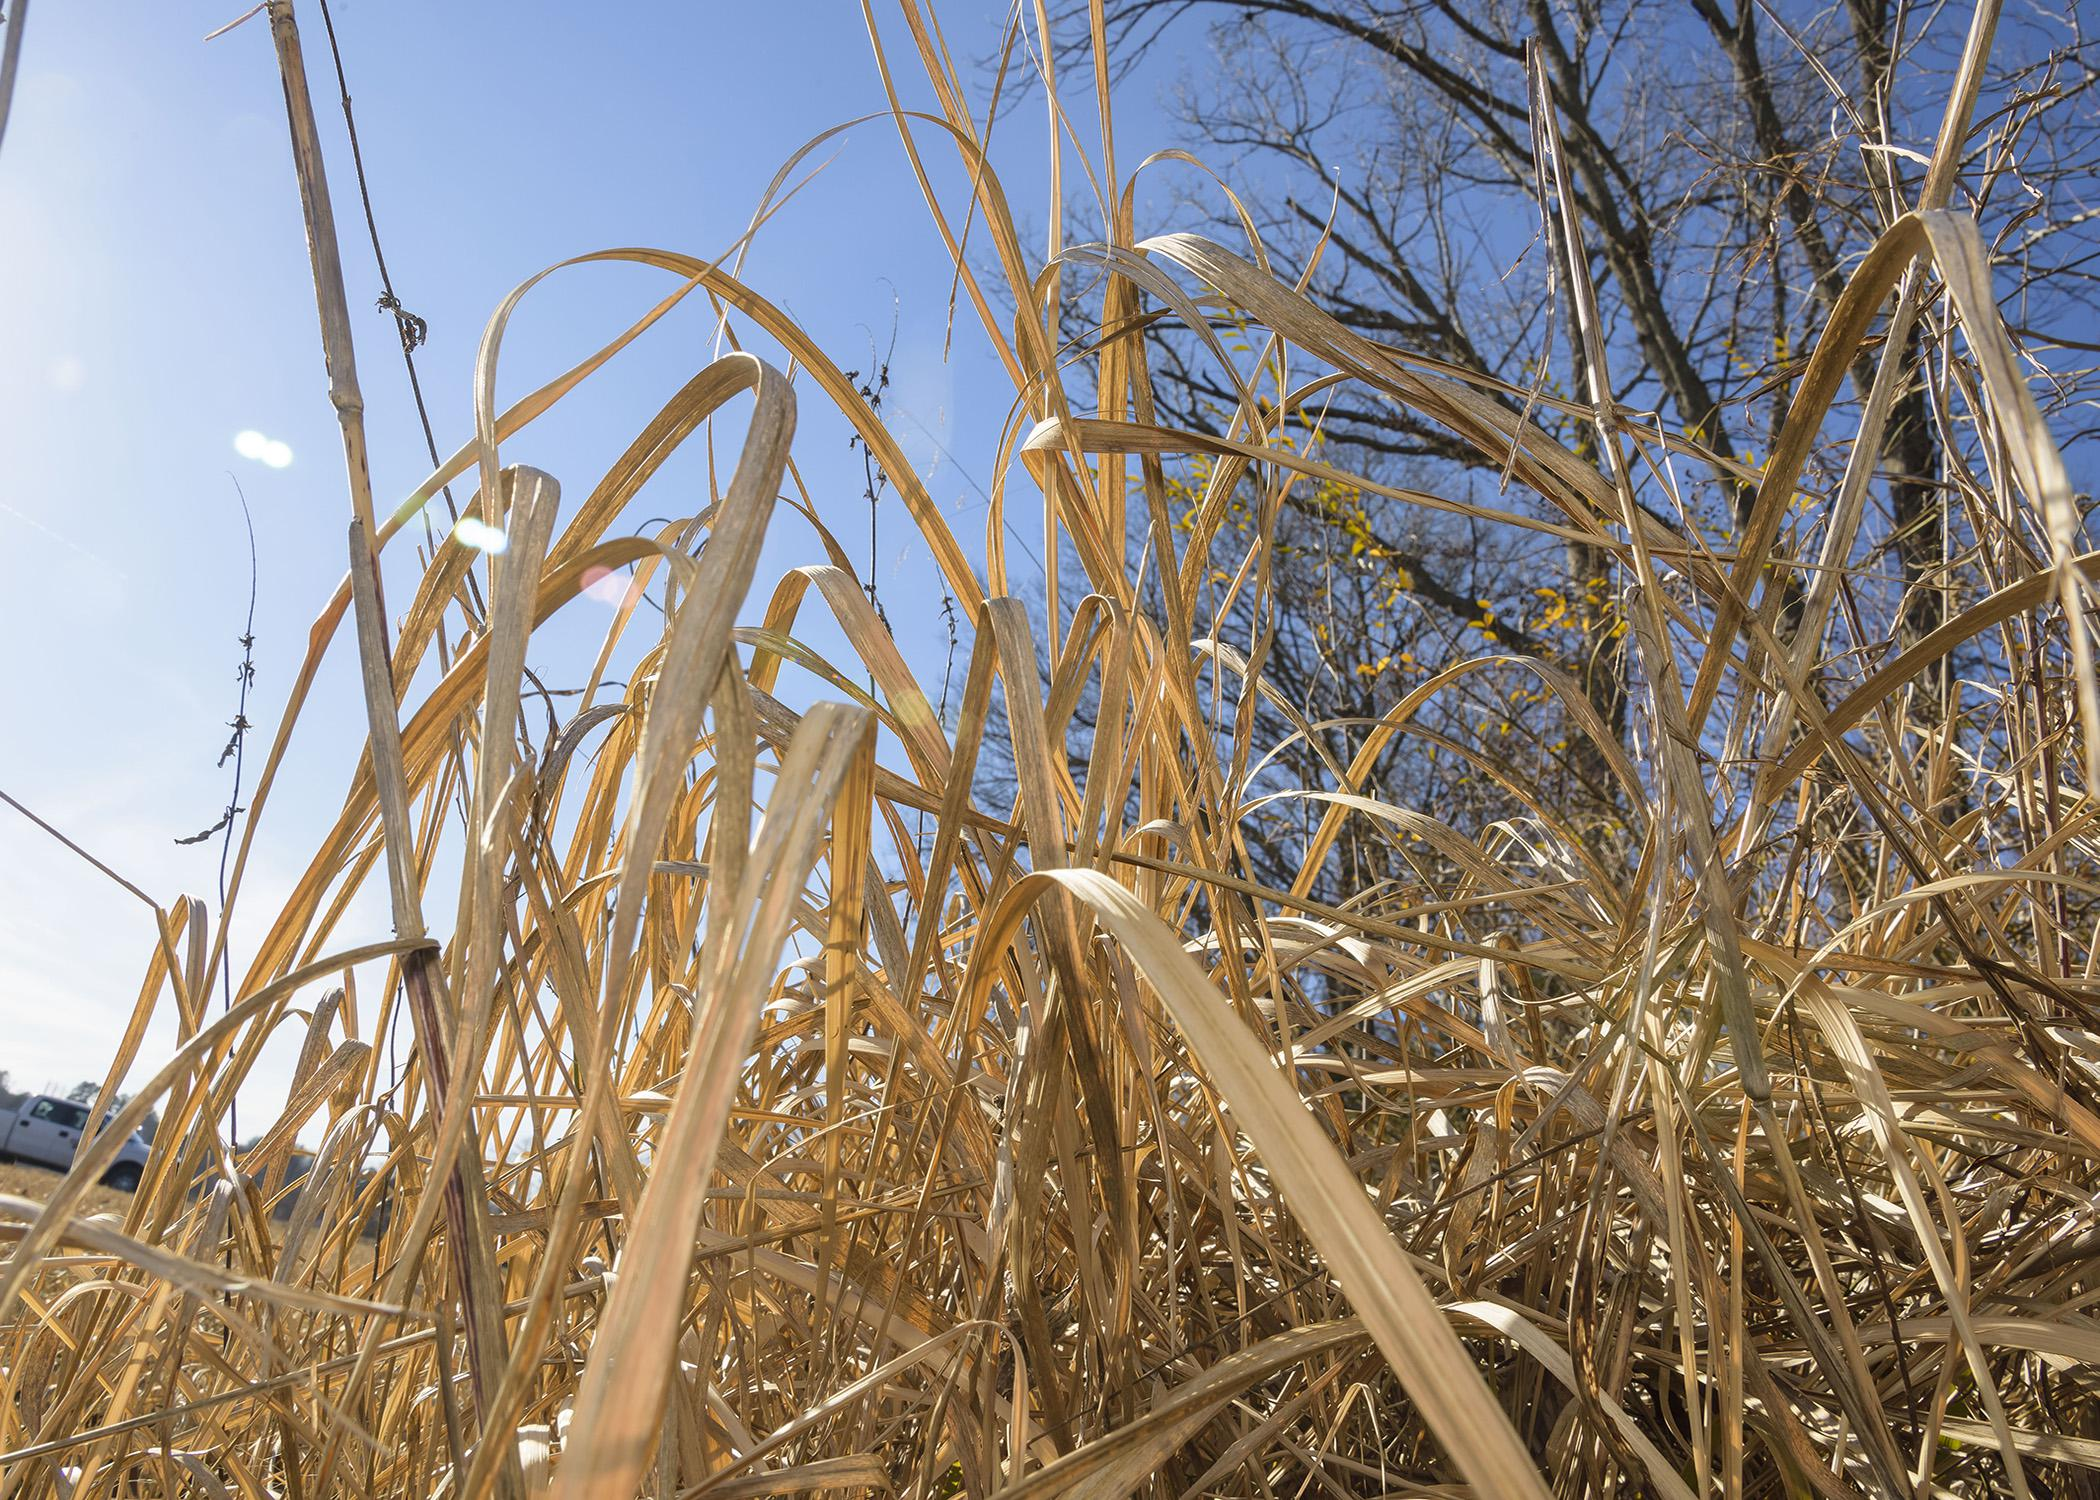 Winter is one of the easiest times of the year to identify cogongrass, which many researchers have classified among the worst weeds in the world. Herbicide treatments applied in the early spring are instrumental in eliminating the noxious weed. (Photo by MSU Ag Communications/Kevin Hudson)